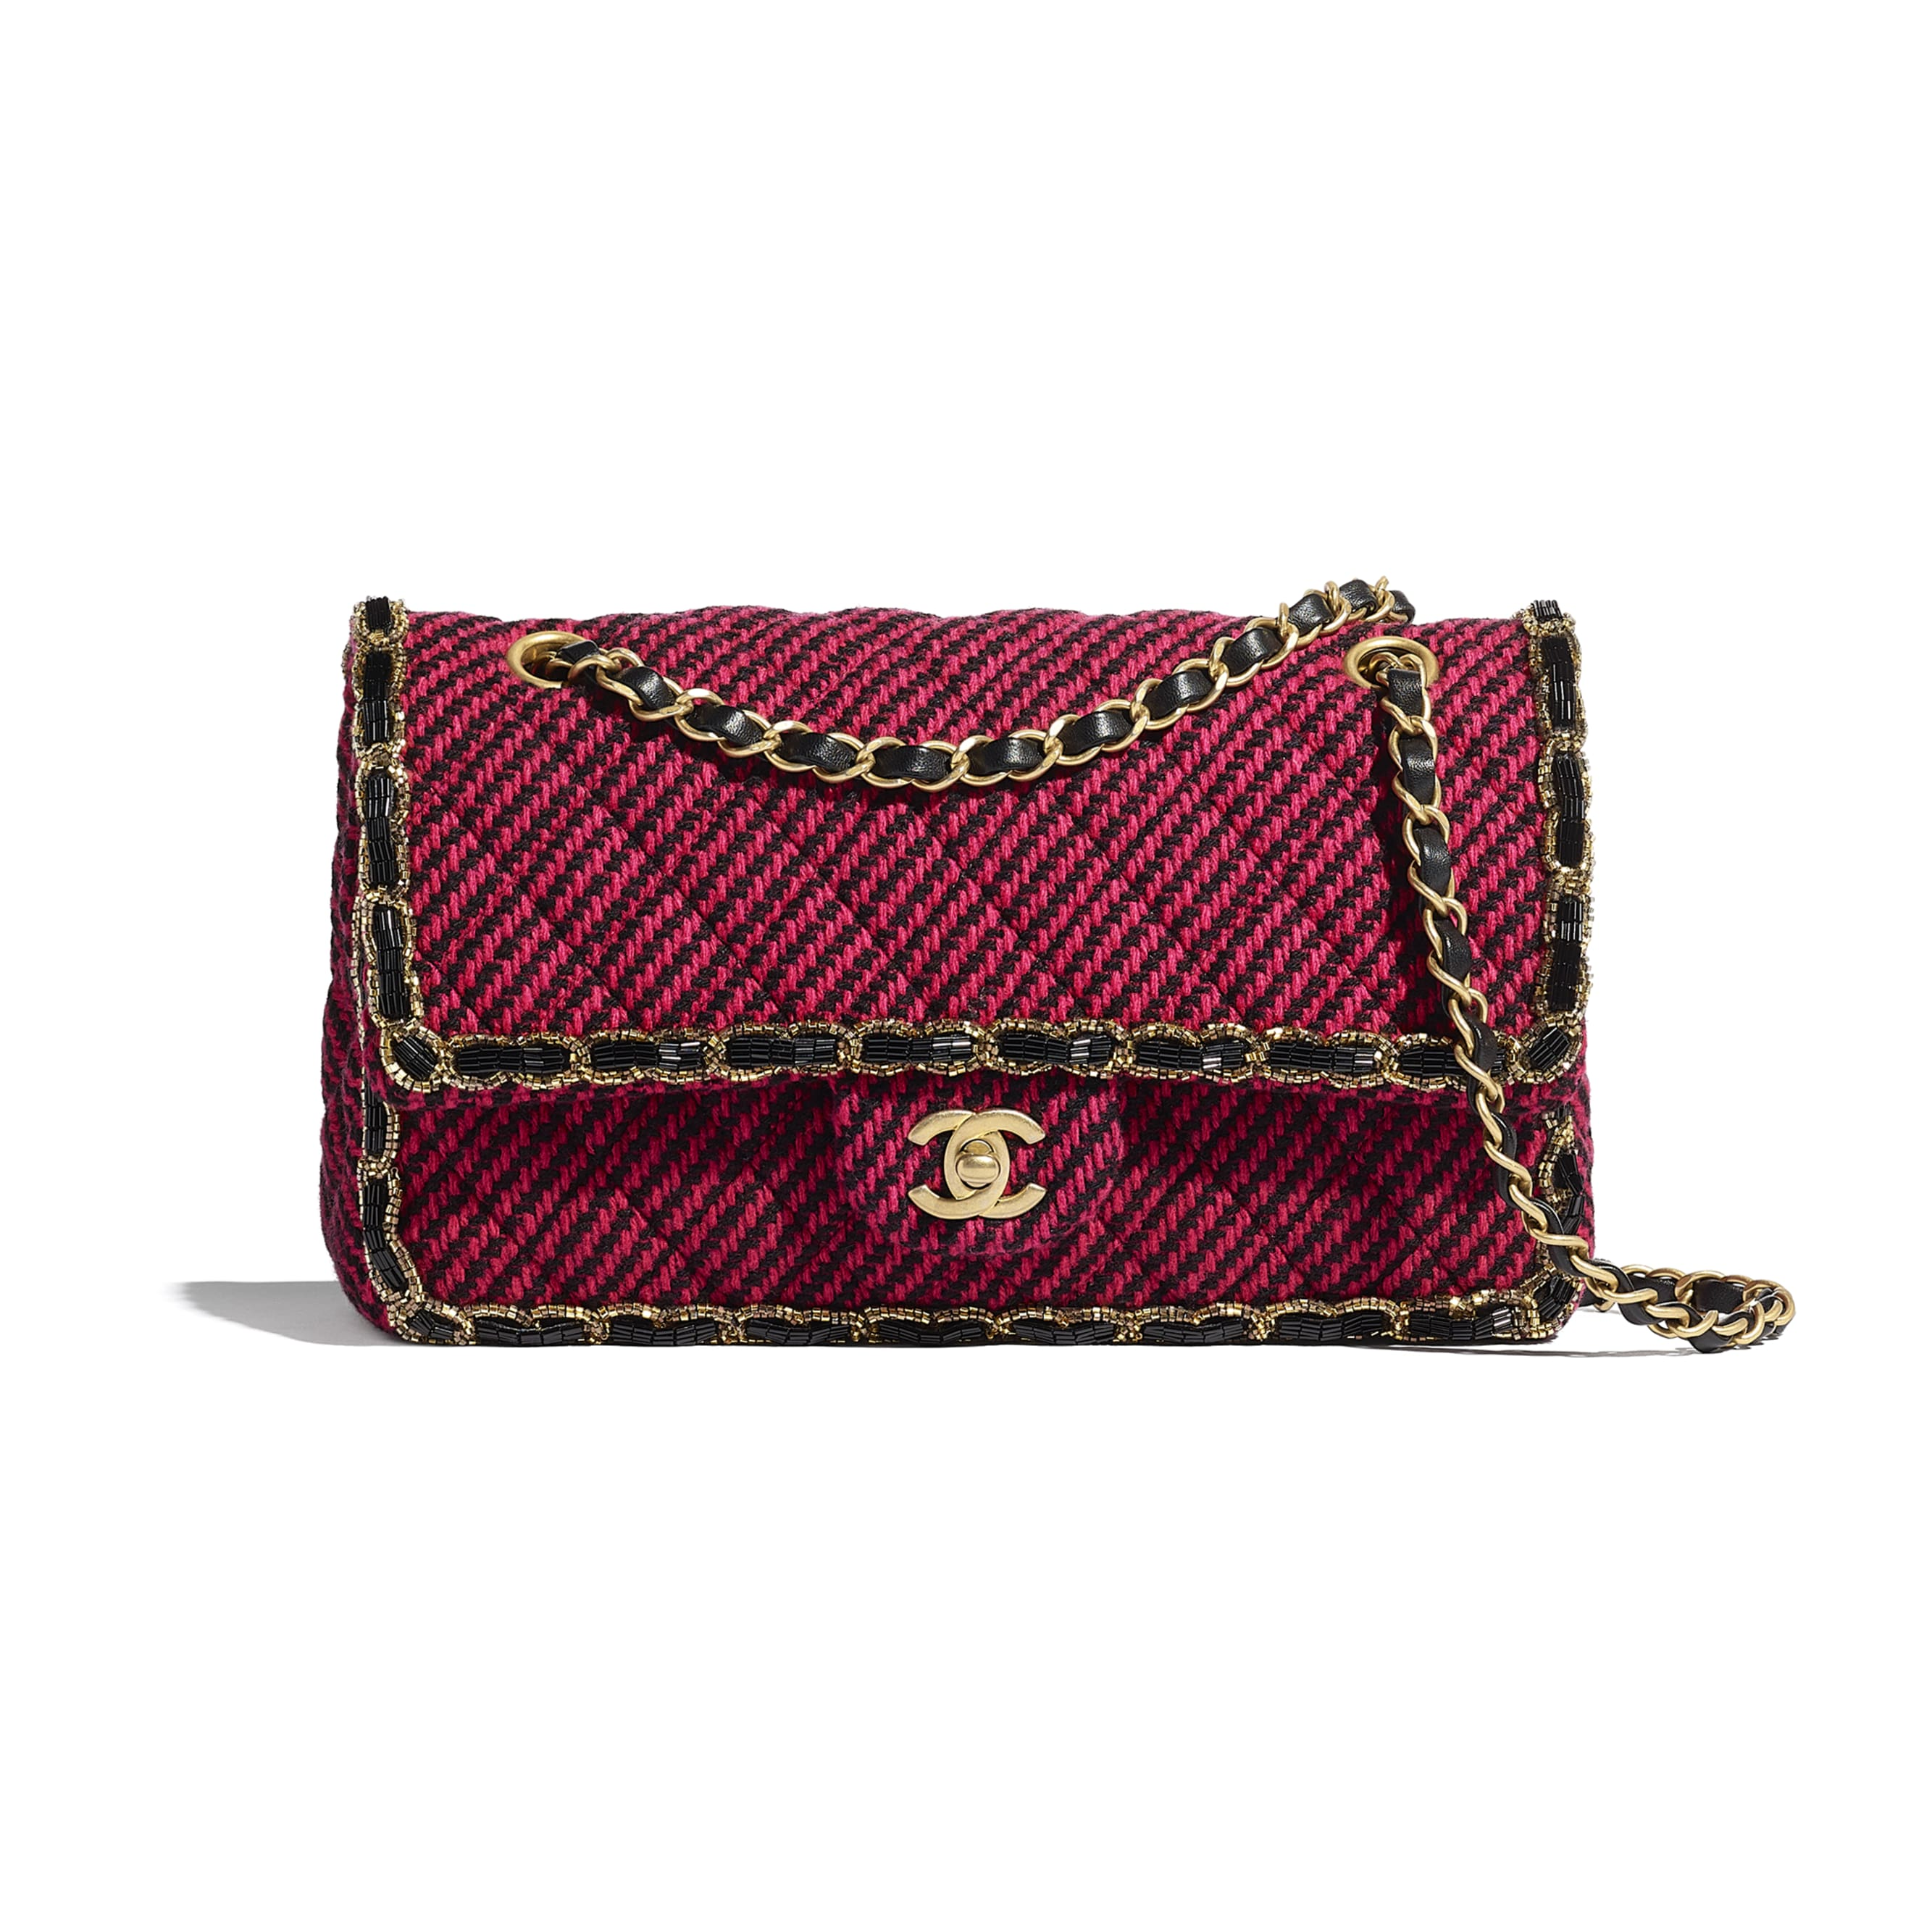 Classic Handbag - Red & Black - Wool Tweed, Glass Pearls & Gold-Tone Metal - CHANEL - Default view - see standard sized version